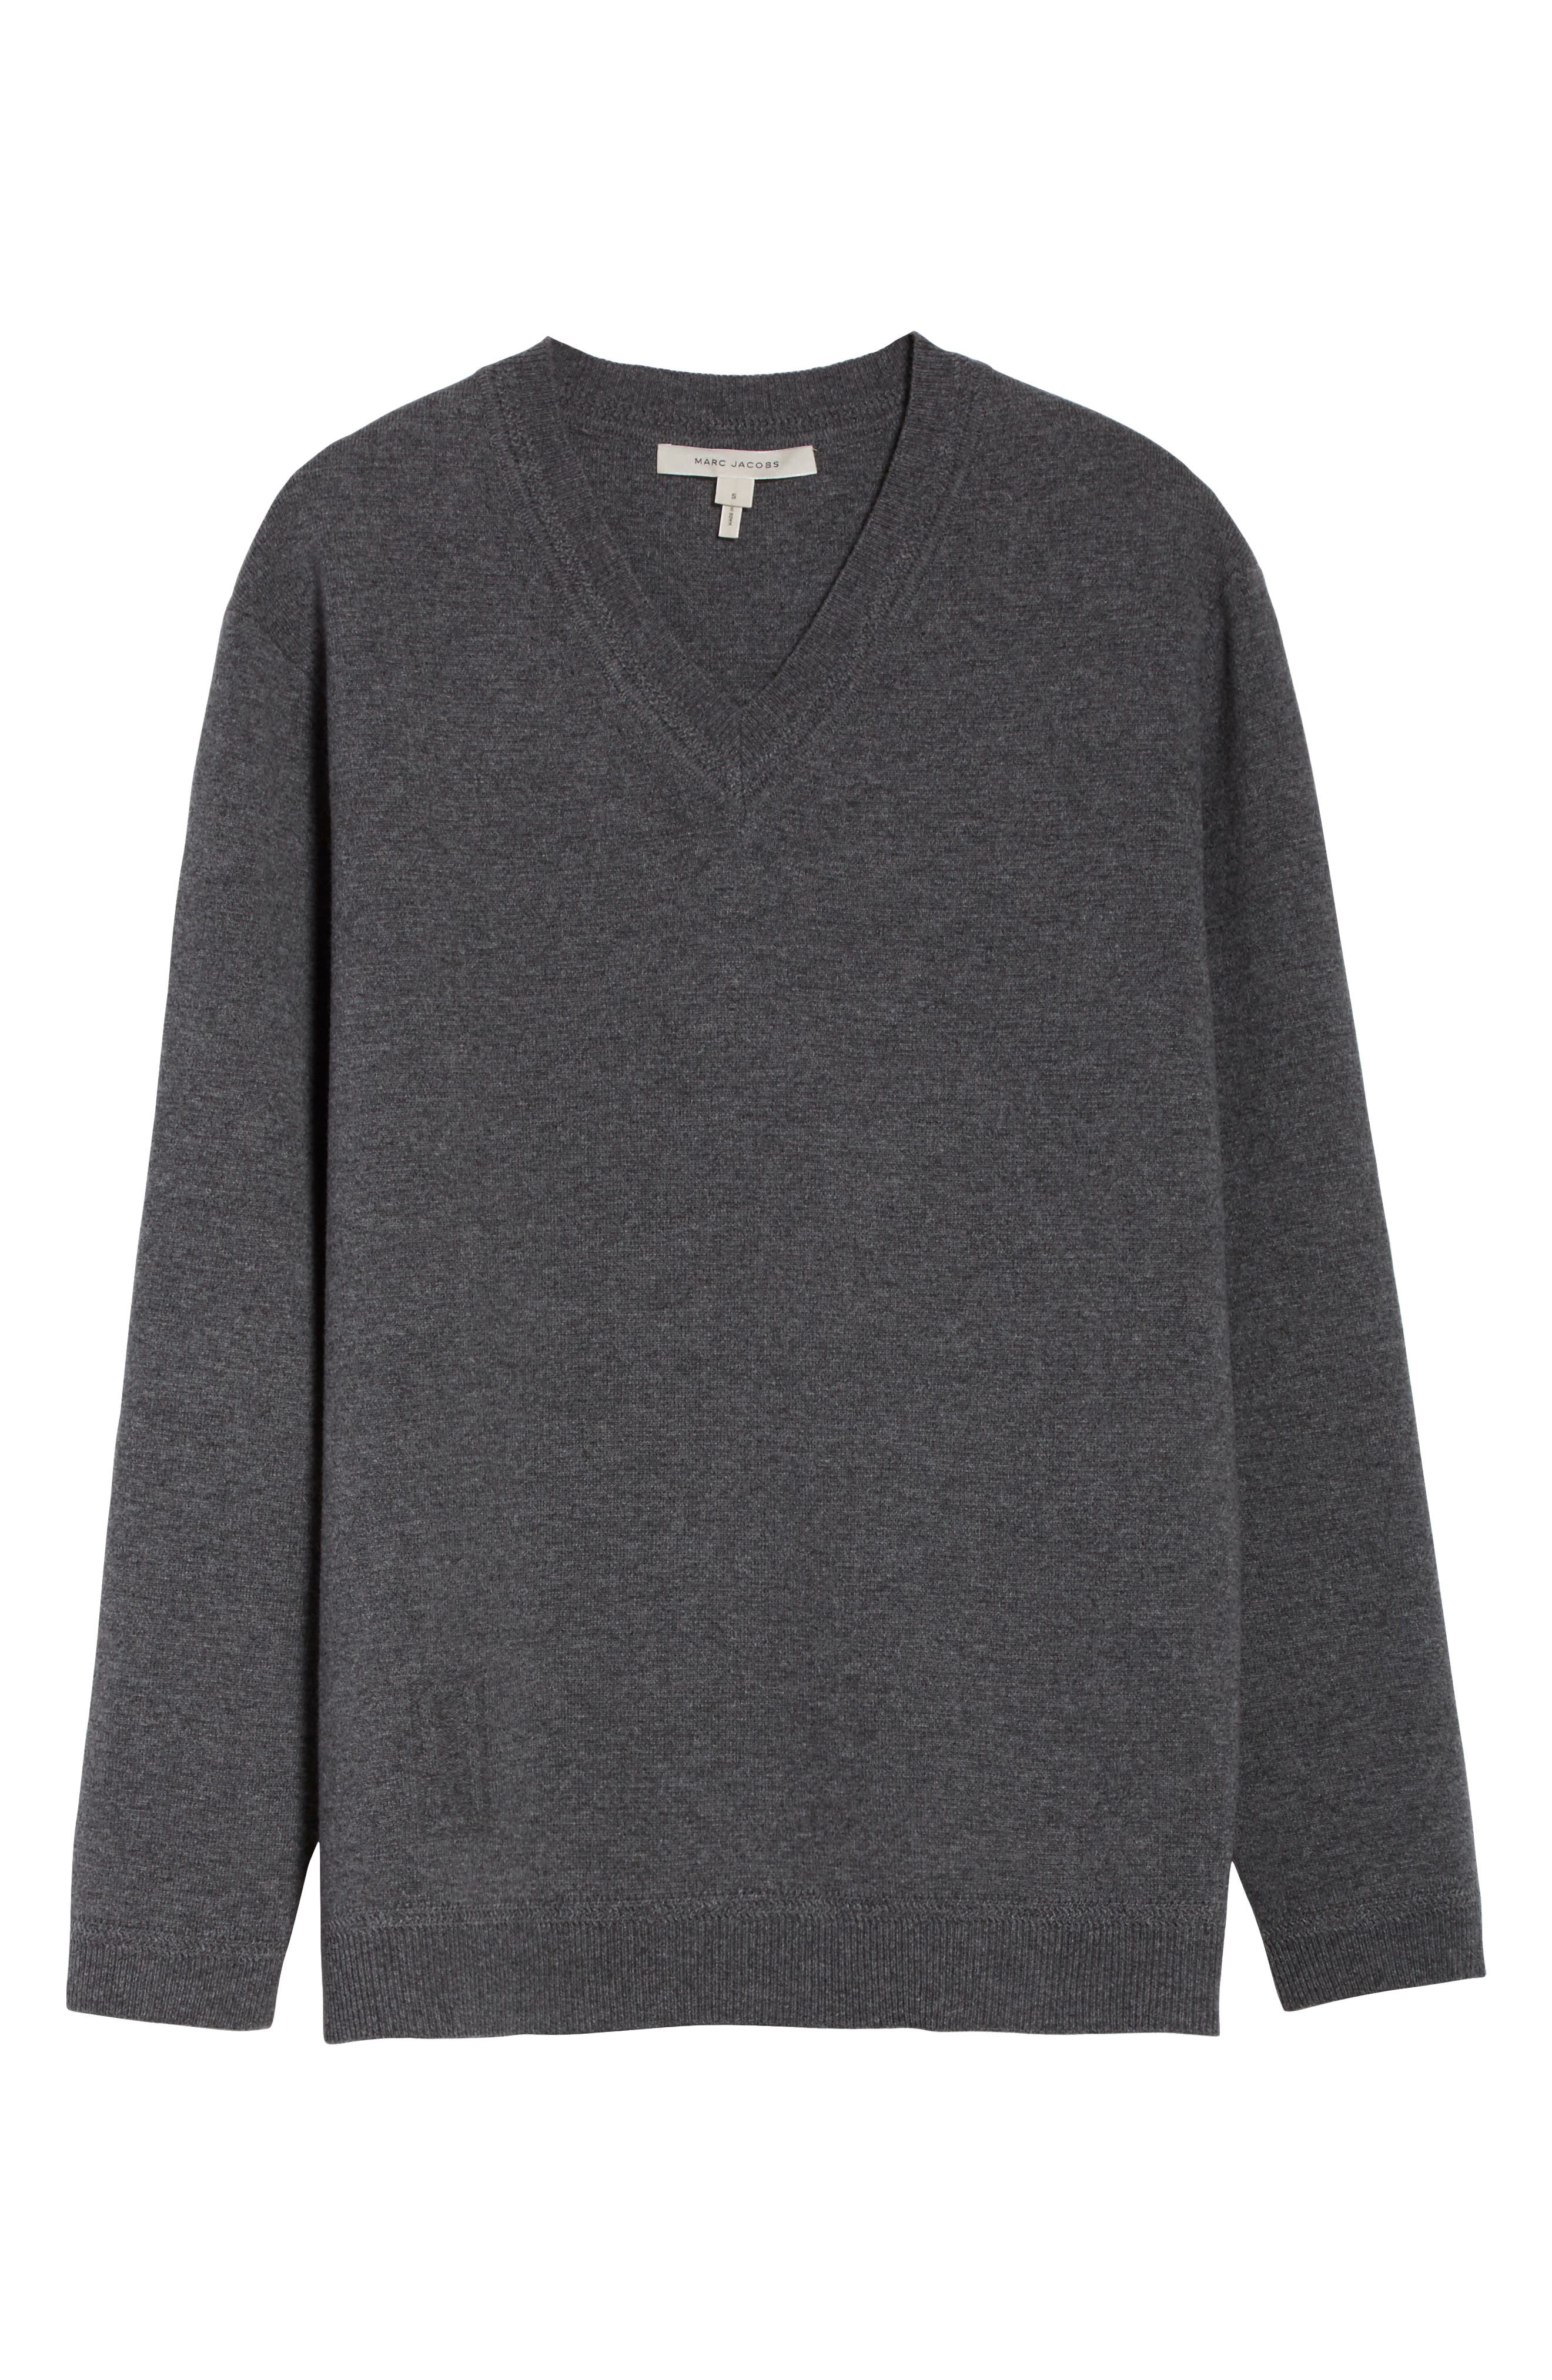 Wool & Cashmere Sweater,                             Alternate thumbnail 6, color,                             032